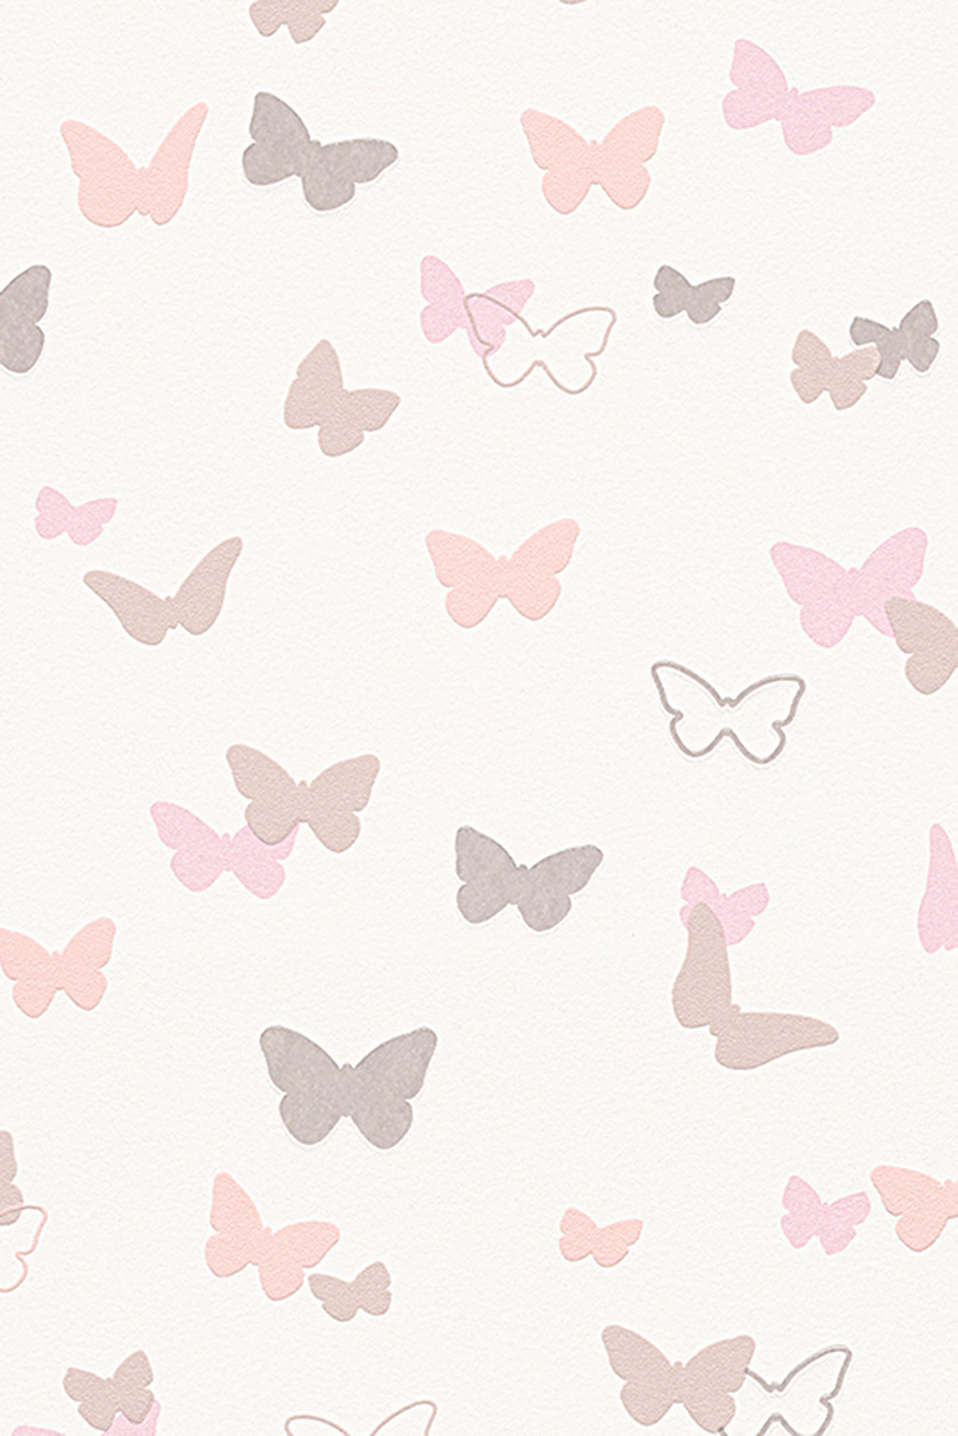 Esprit Kids Wallpaper Sweet Butterfly Patterned At Our